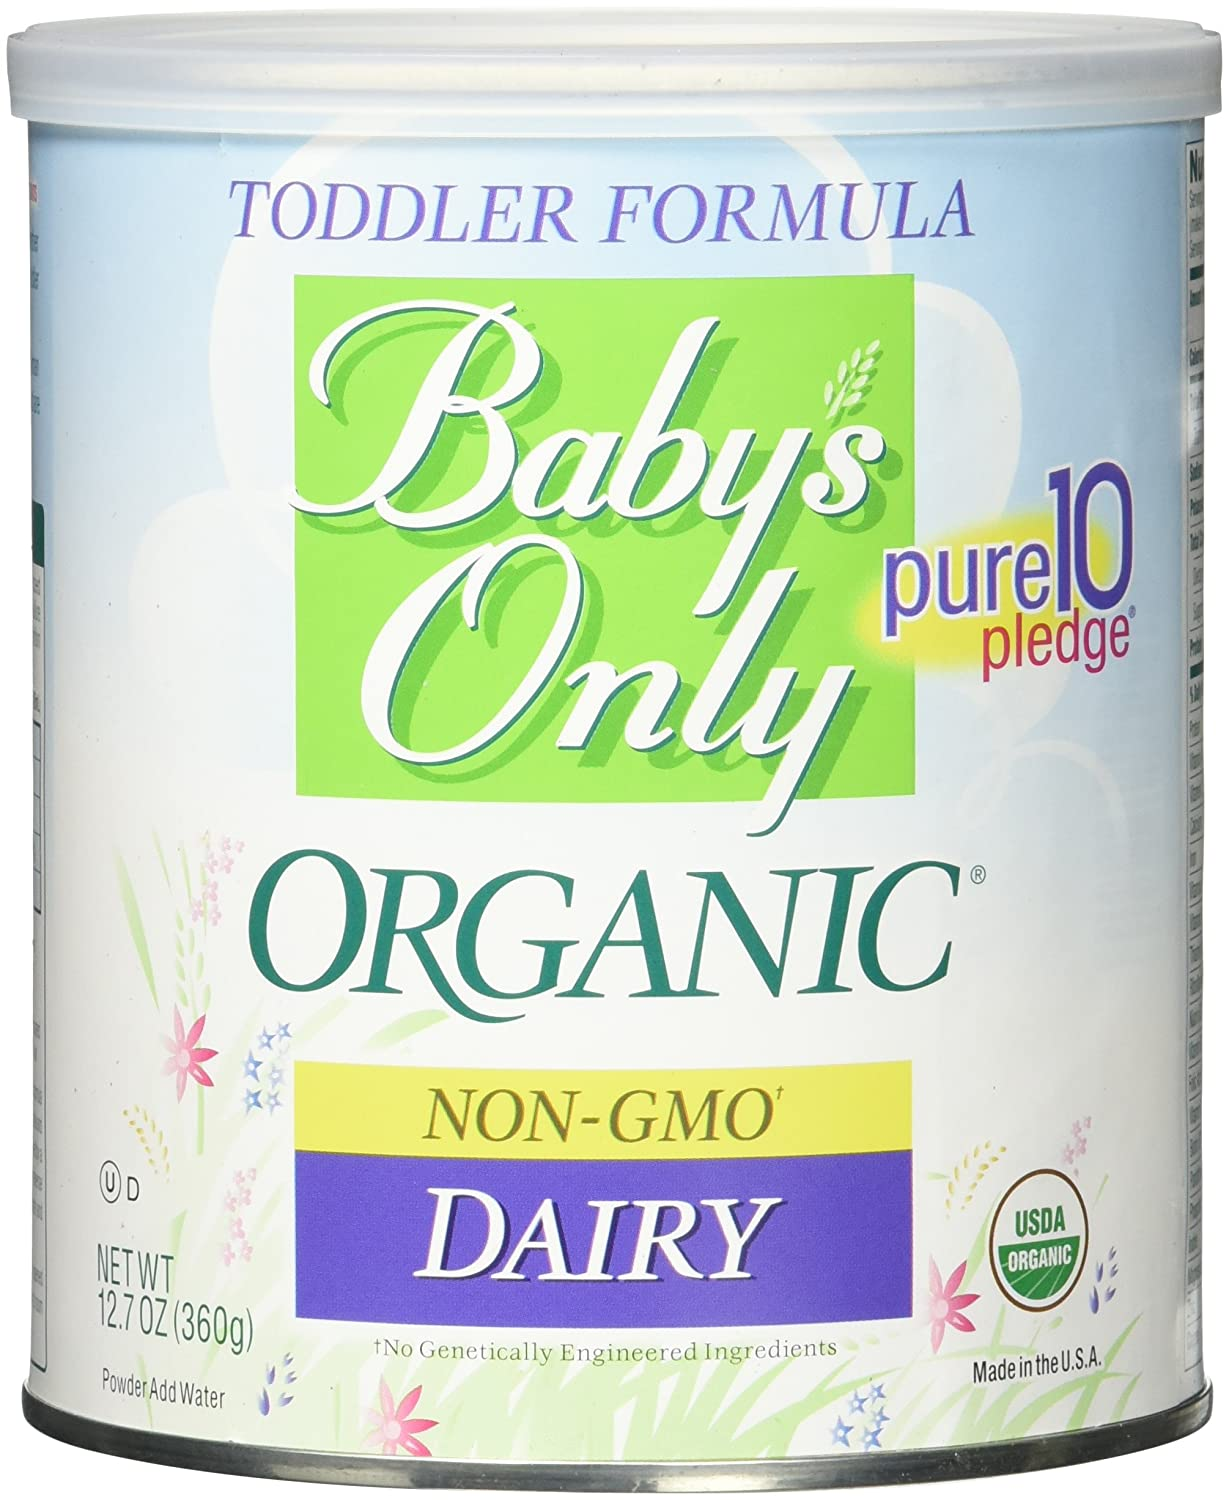 Top 5 Of The Best Organic Formula For Babies In The Market 19